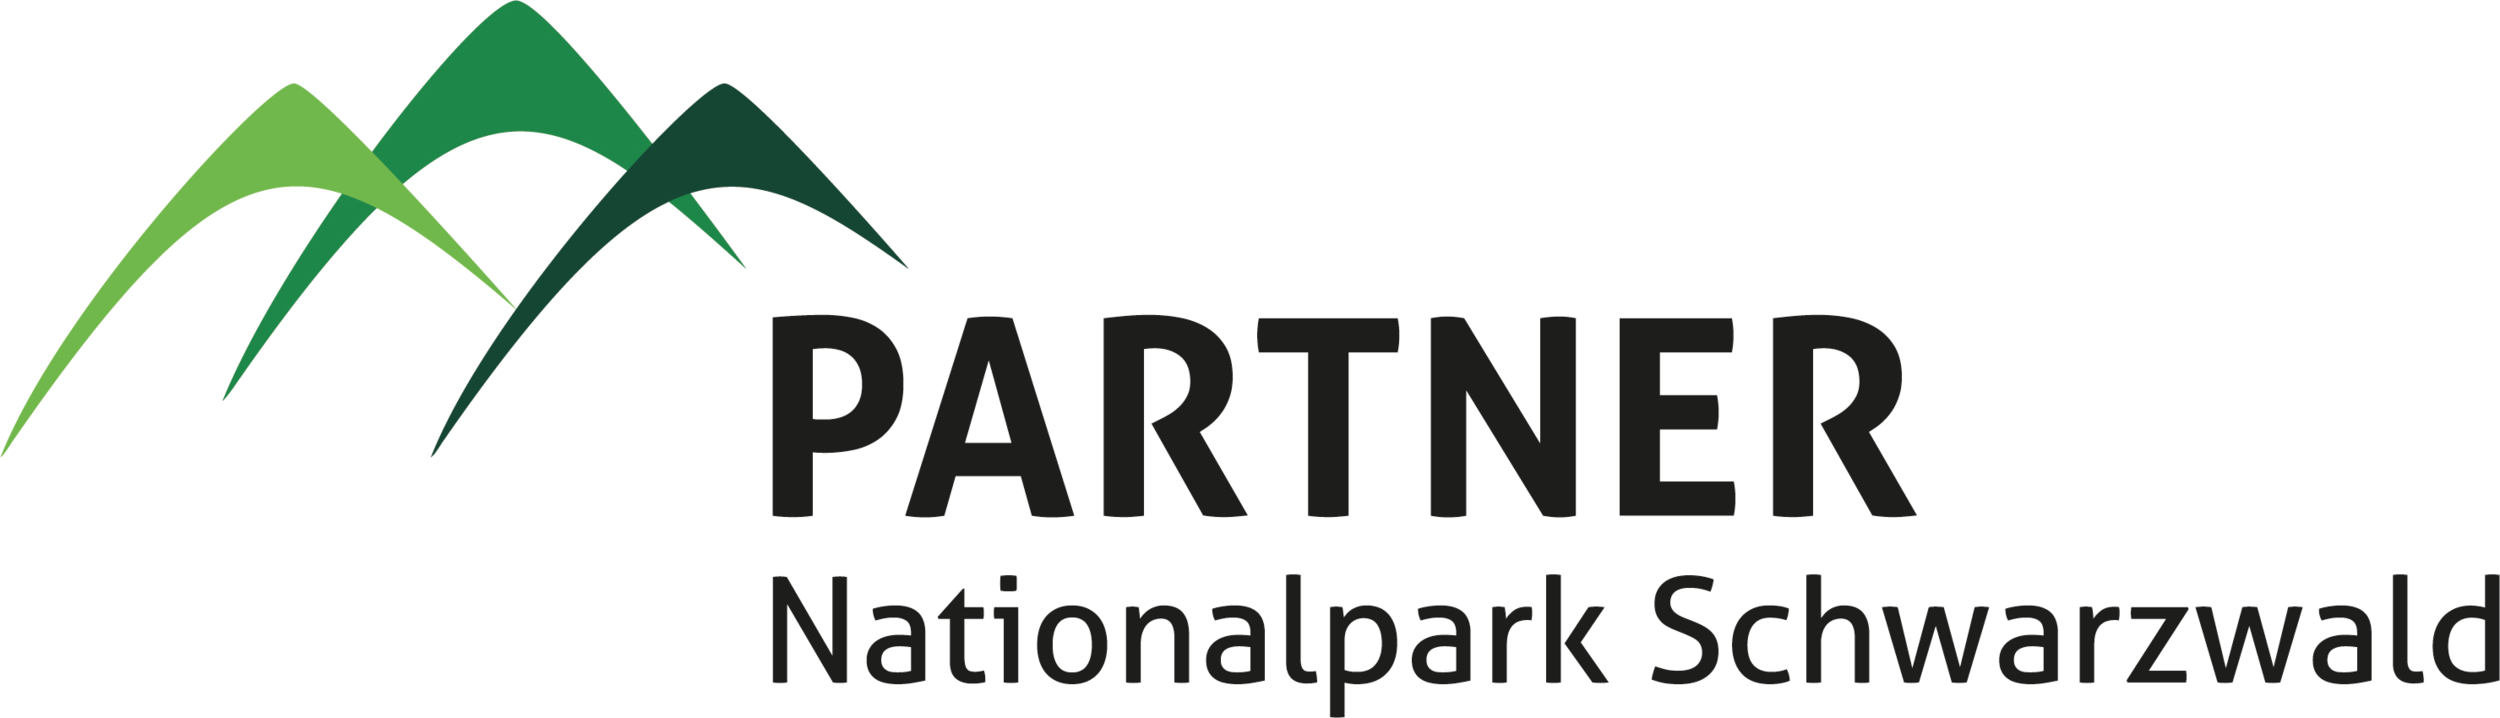 Nationalpark Schwarzwald Partnerlogo